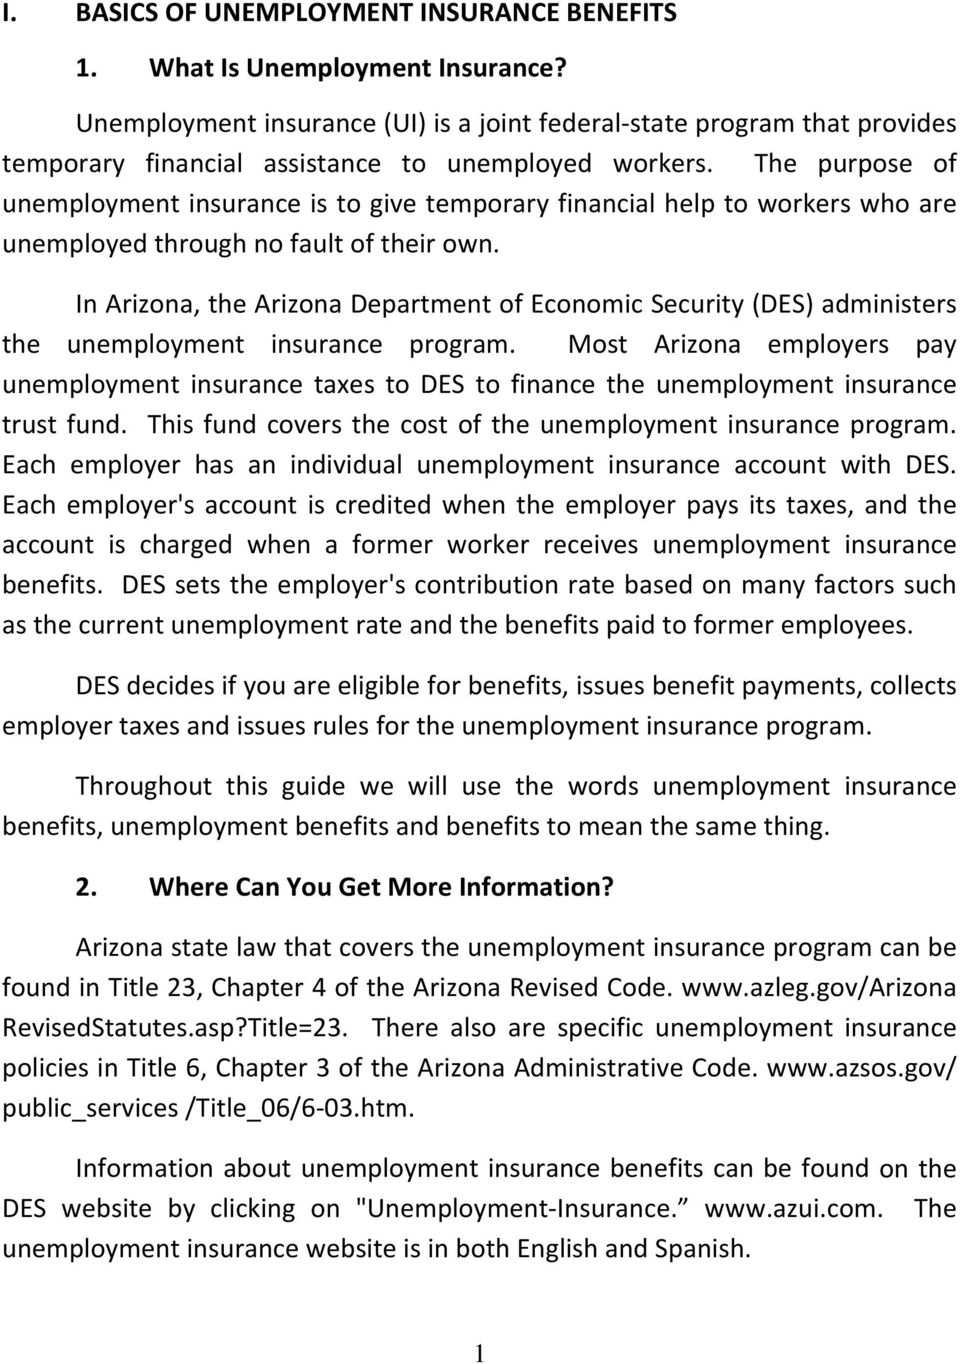 The purpose of unemployment insurance is to give temporary financial help to workers who are unemployed through no fault of their own.